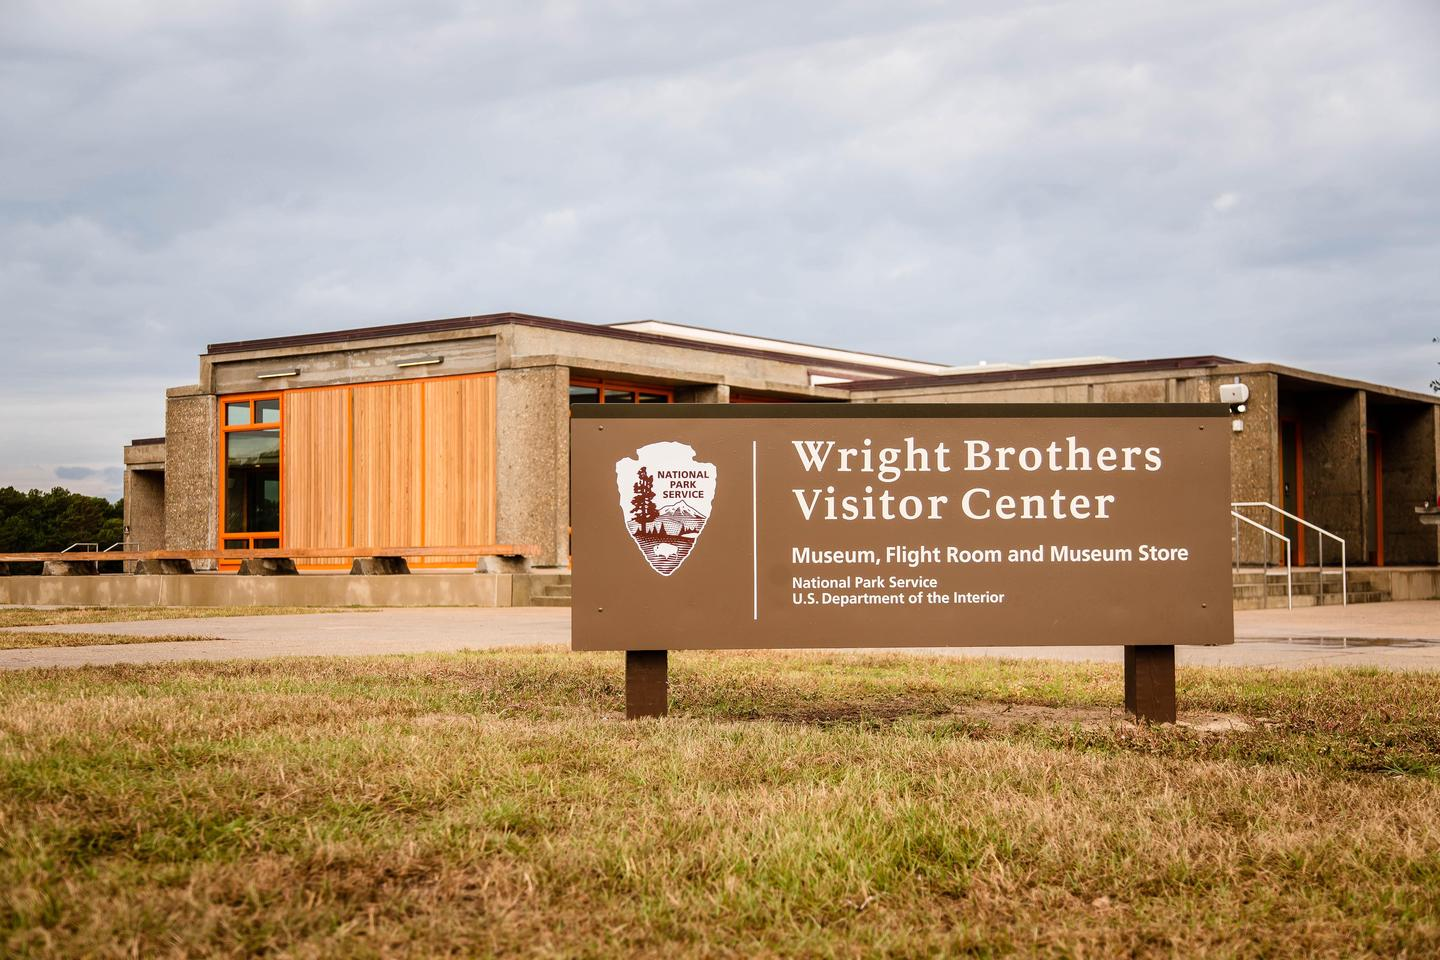 Wright Brothers Visitor Center and Museum